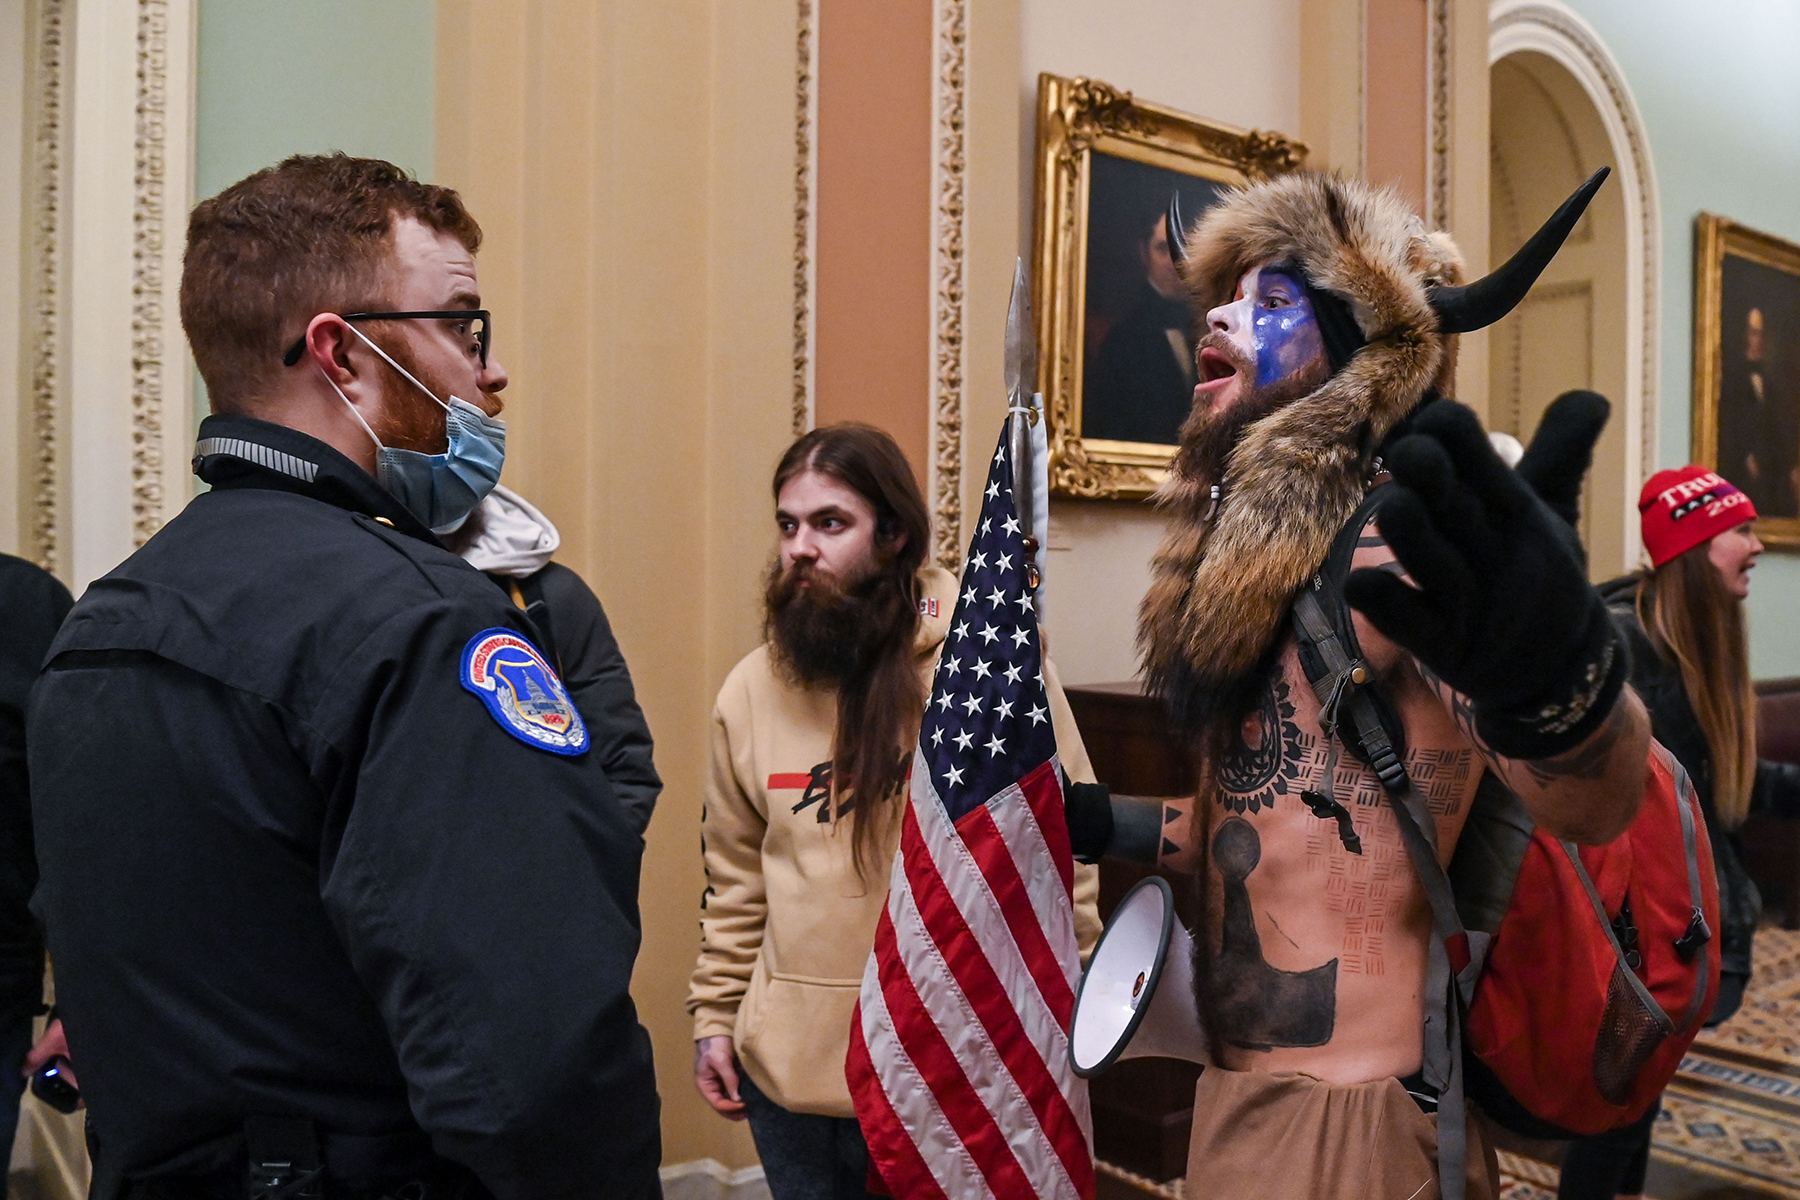 US Capitol police officers try to stop supporters of US President Donald Trump, including Jake Angeli (R), a QAnon supporter known for his painted face and horned hat, to enter the Capitol on January 6, 2021, in Washington, DC. - Demonstrators breeched security and entered the Capitol as Congress debated the a 2020 presidential election Electoral Vote Certification. (Photo by Saul LOEB / AFP) (Photo by SAUL LOEB/AFP via Getty Images)